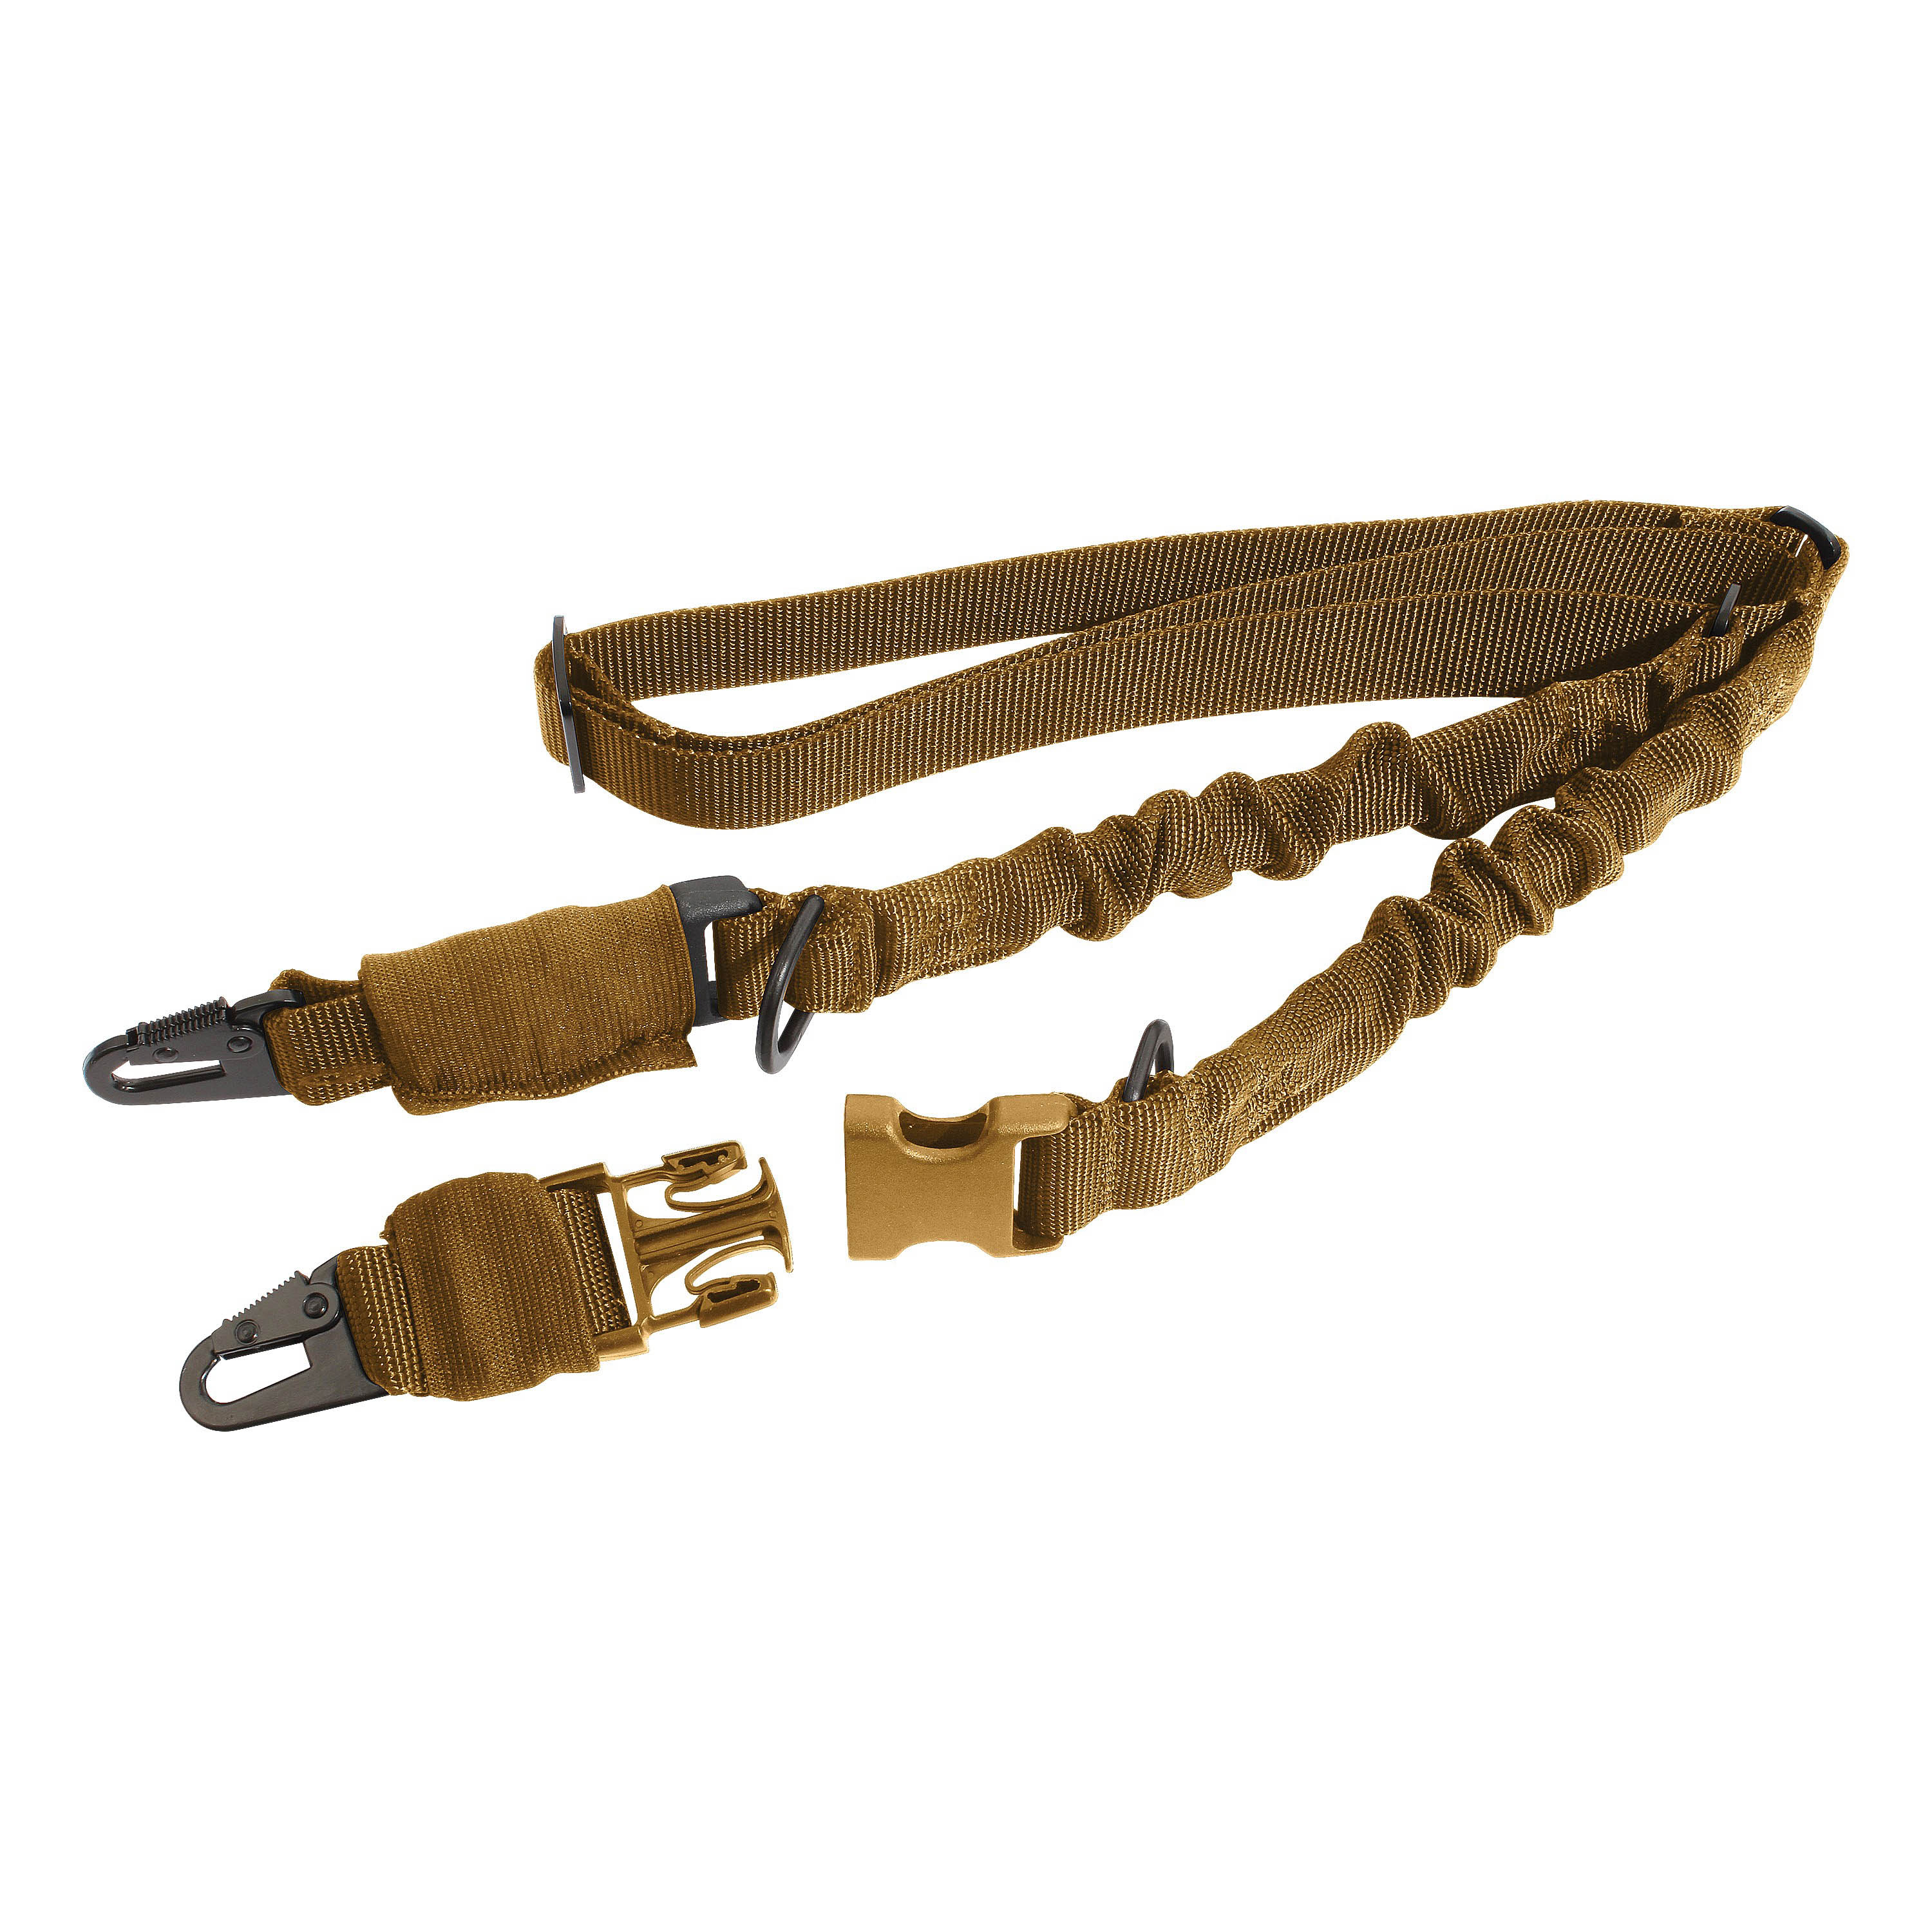 Rothco Rifle Sling 2-Point Tactical Sling coyote